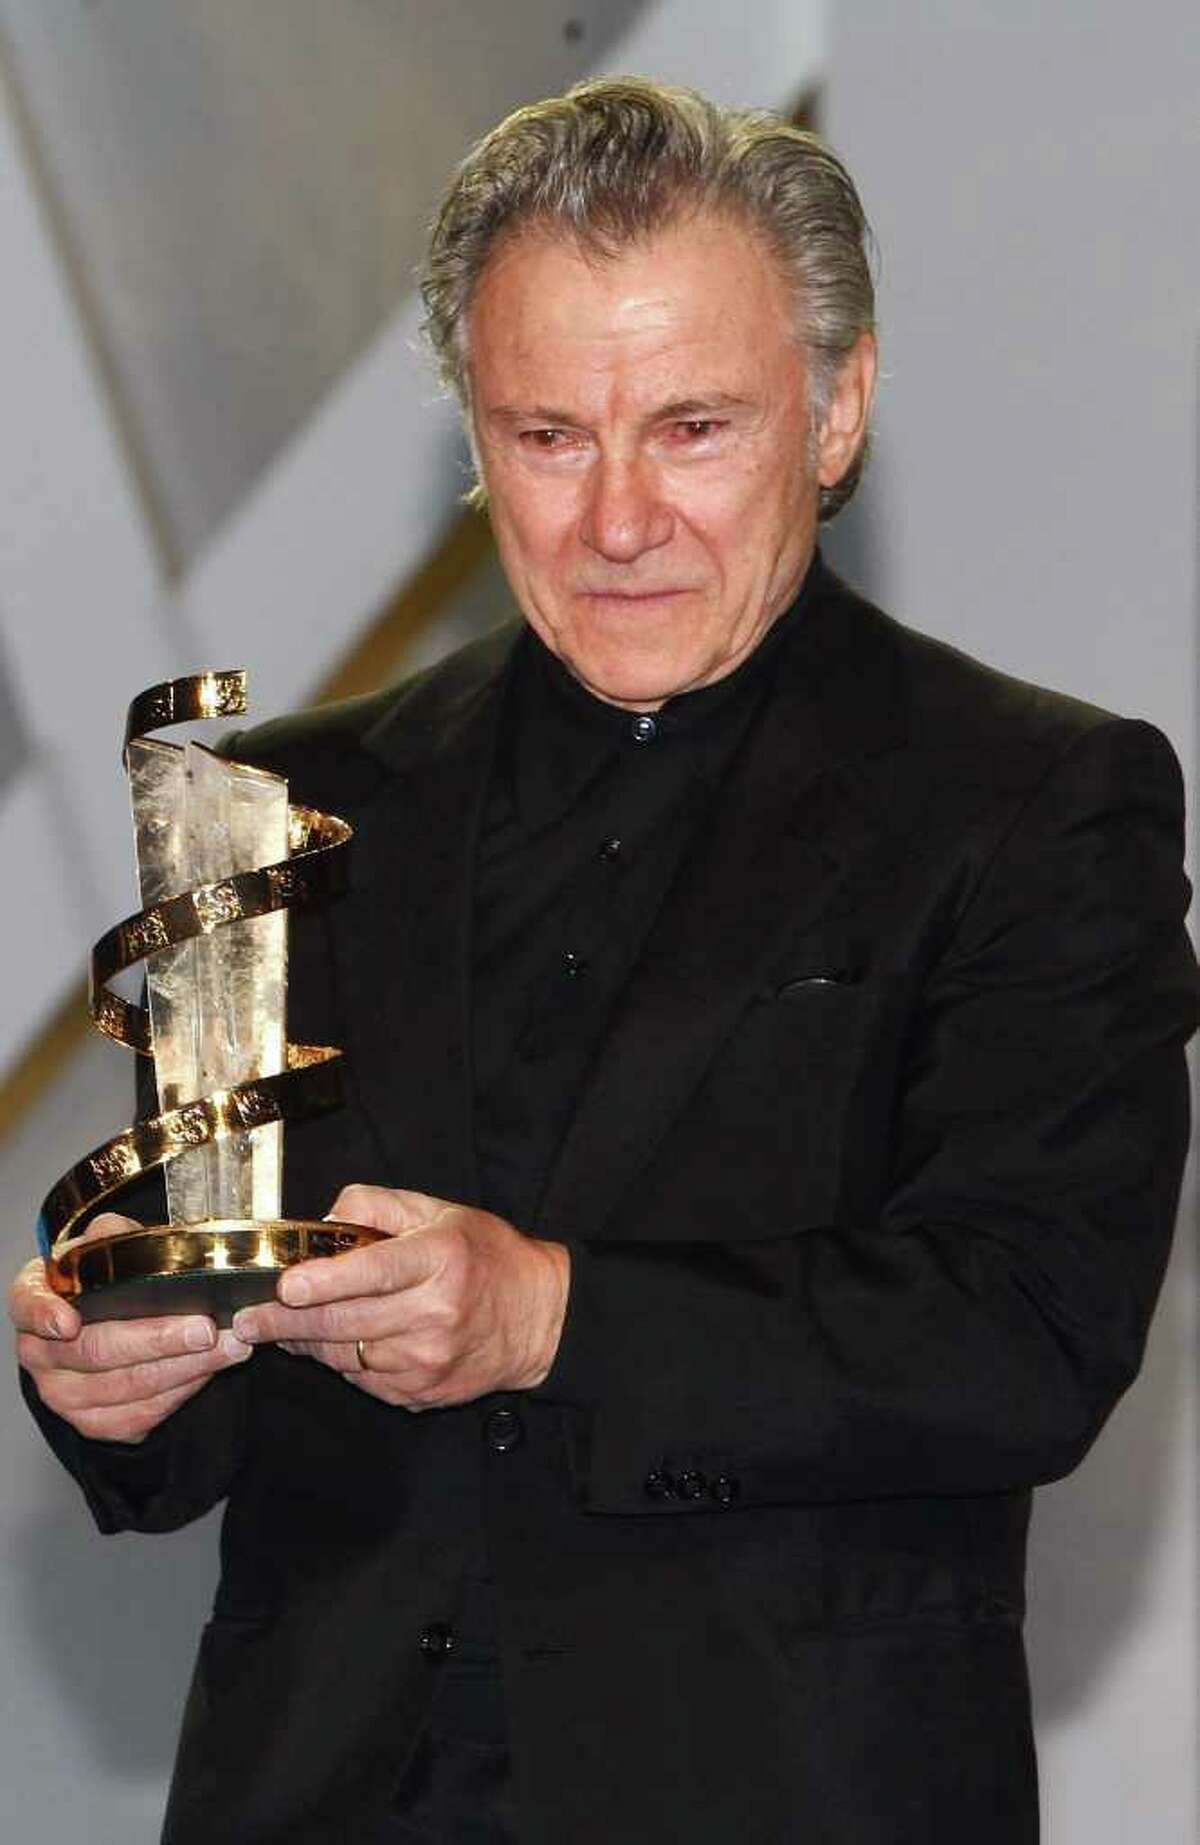 Us actor Harvey Keitel reacts, after receiving an award from US actress Susan Sarandon , during a tribute to his career, at the 10th Marrakech International Film Festival in Marrakech, Wednesday Dec. 8, 2010. The Festival runs through Dec. 3-11. (AP Photo/Abdeljalil Bounhar)